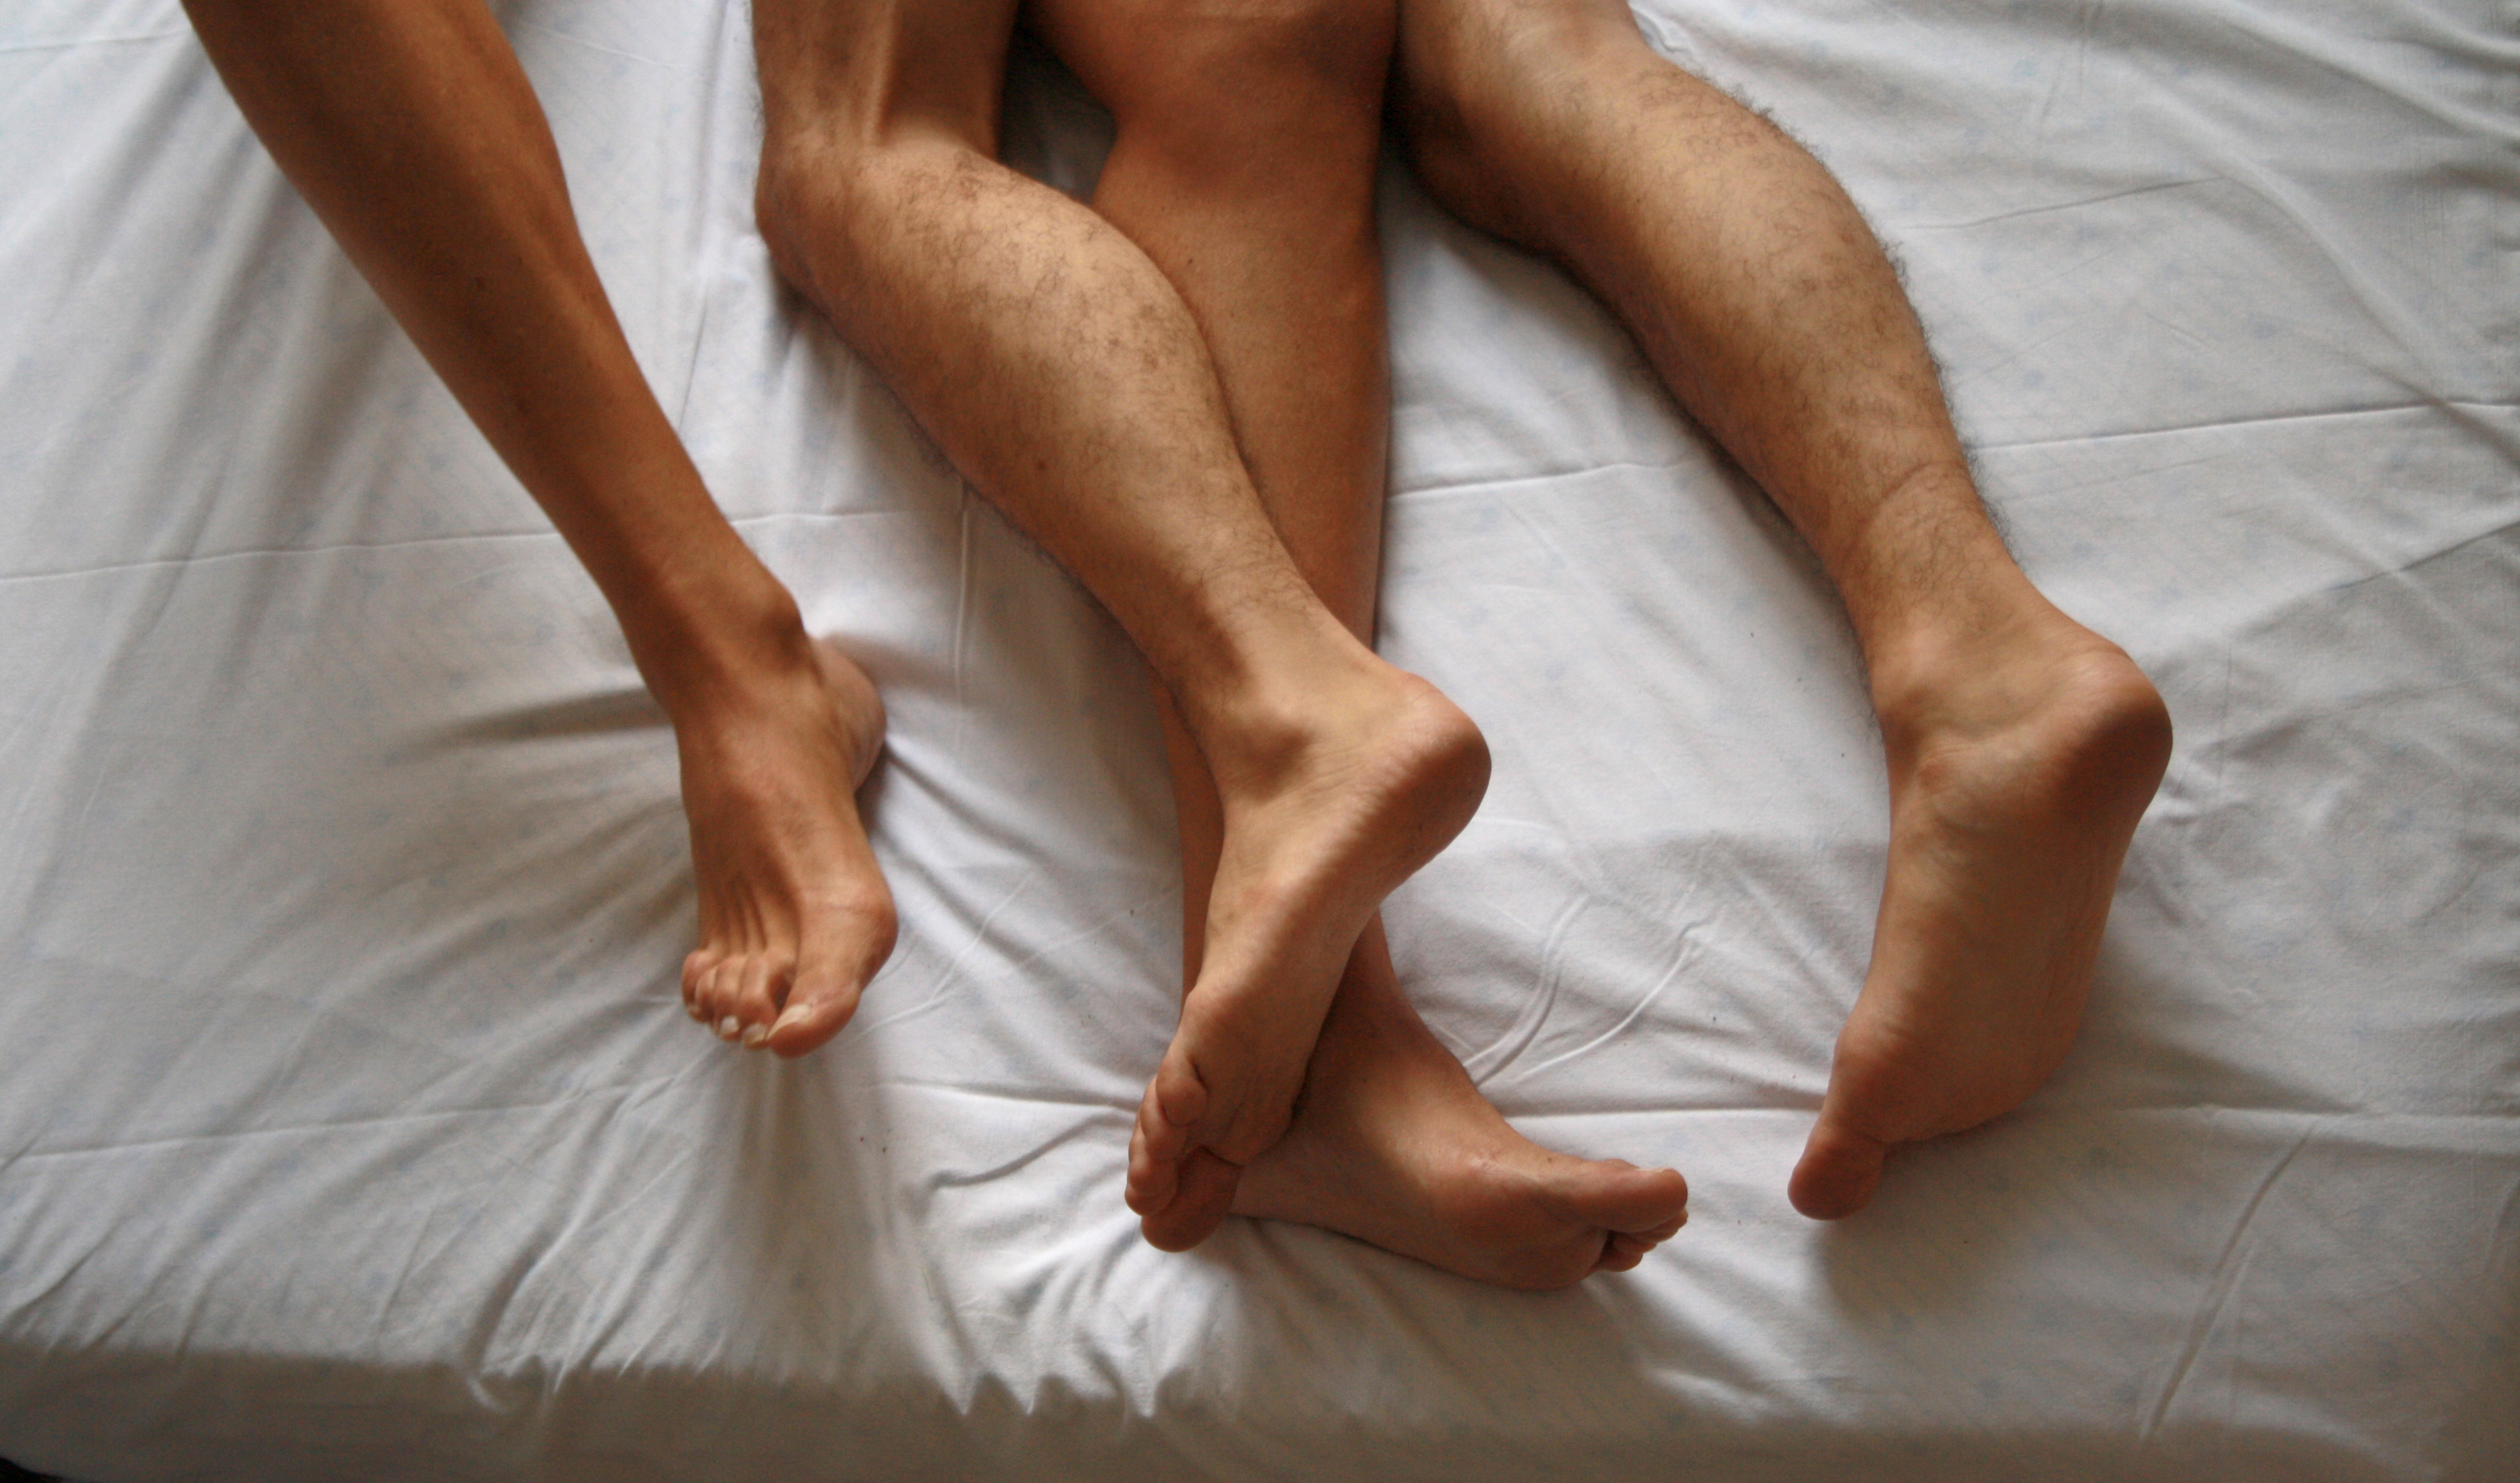 tow people having sex in bed